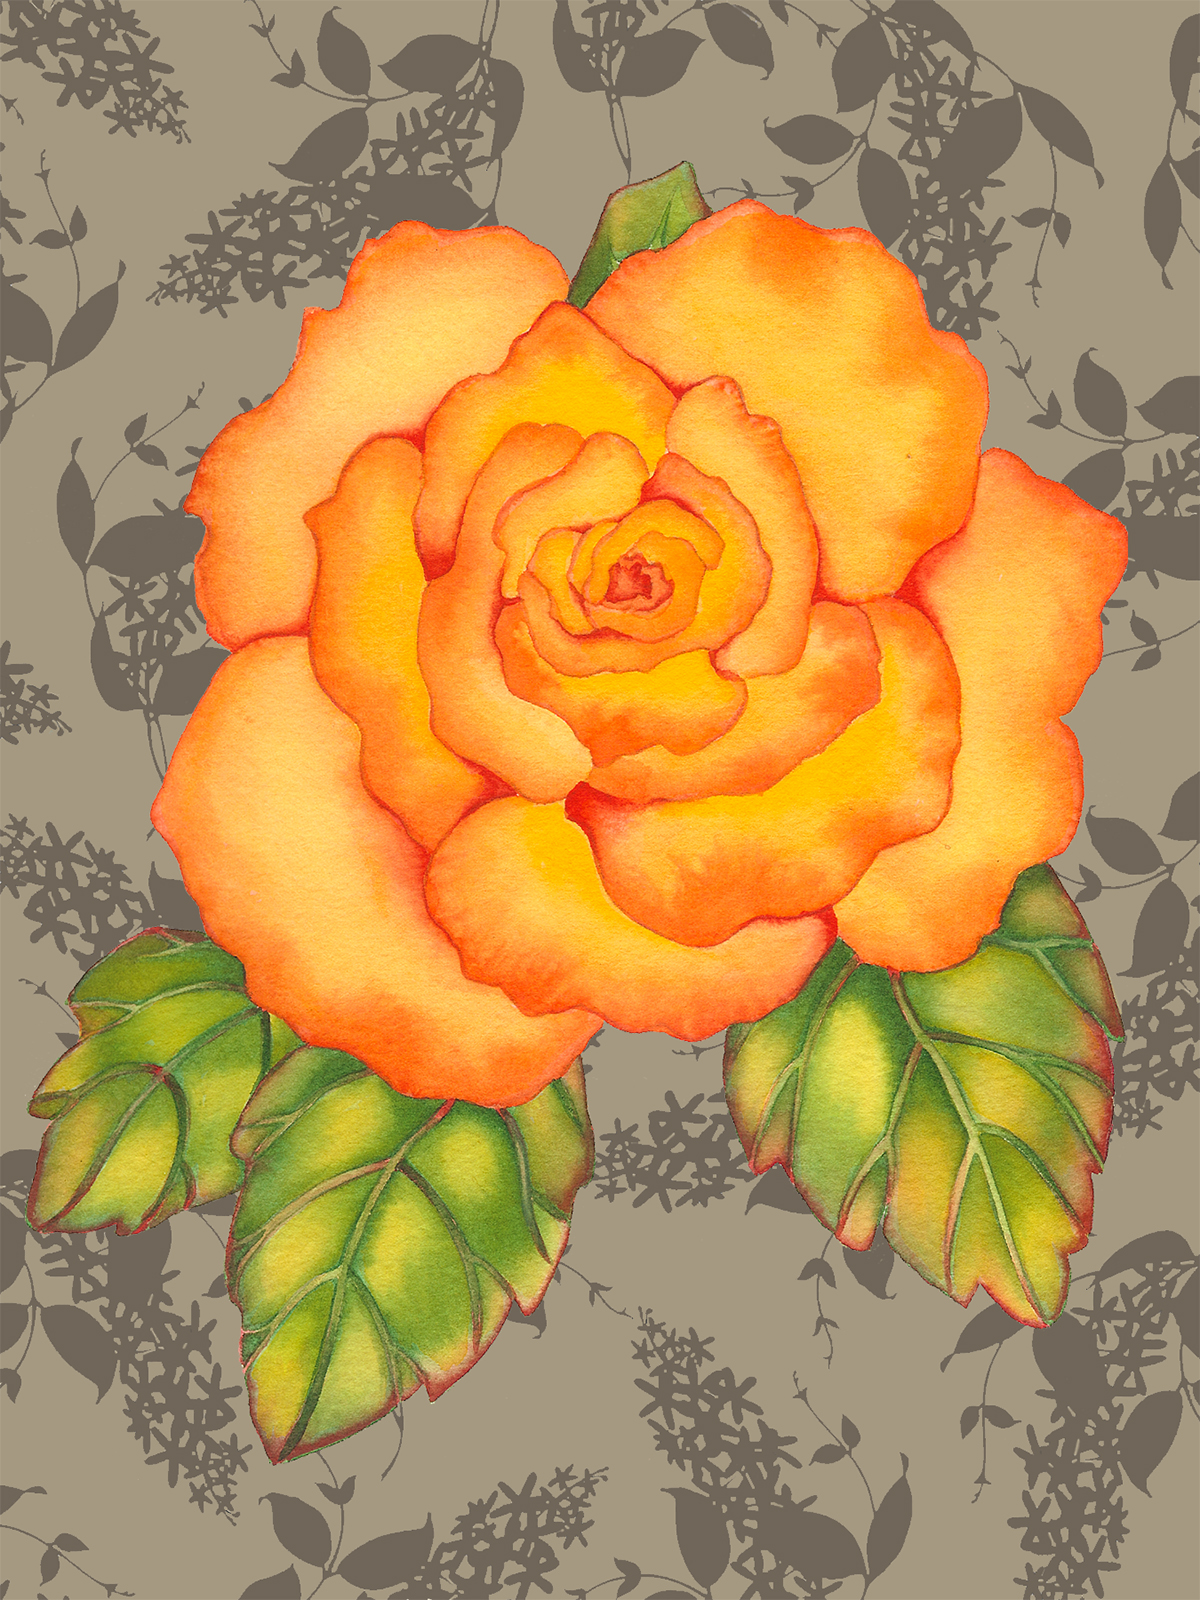 Orange Rose on Lilacs #69